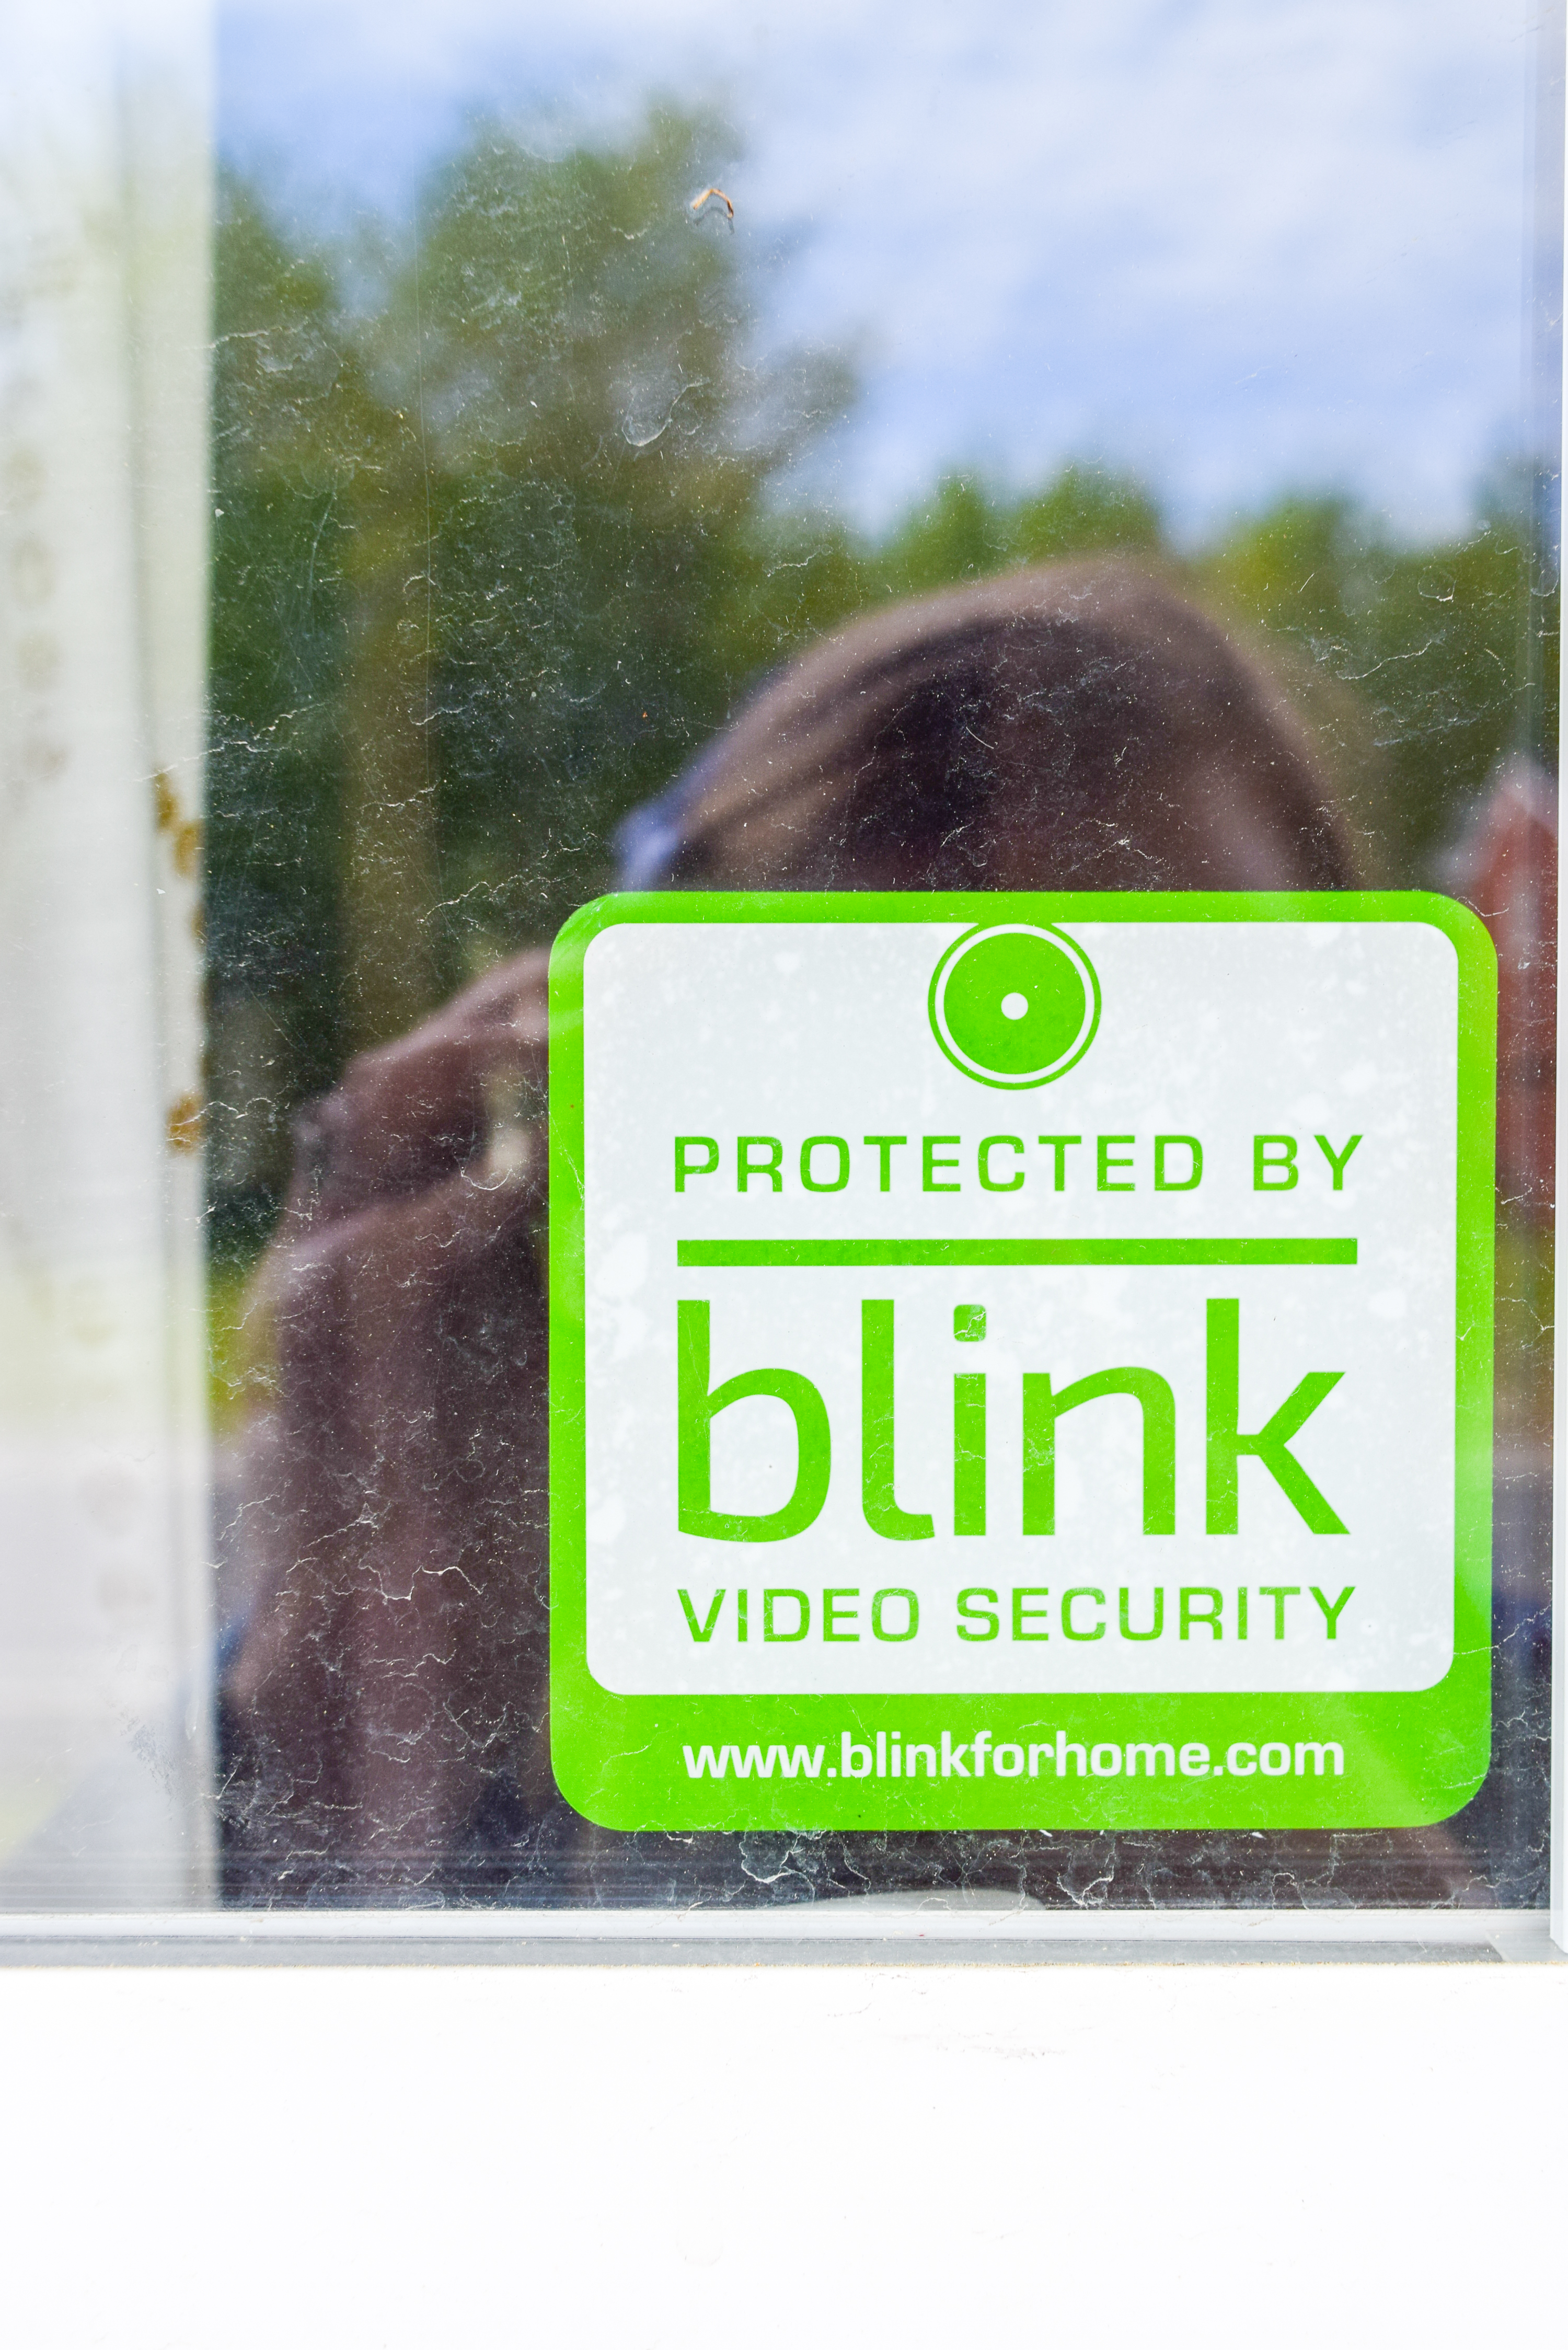 We got a Blink Home Security System, because Bruce likes to sleep on the job. If you're in the market for a wireless, renter friendly, and affordable camera/audio security system, this is the one for you! Come see why we're protected by Blink.